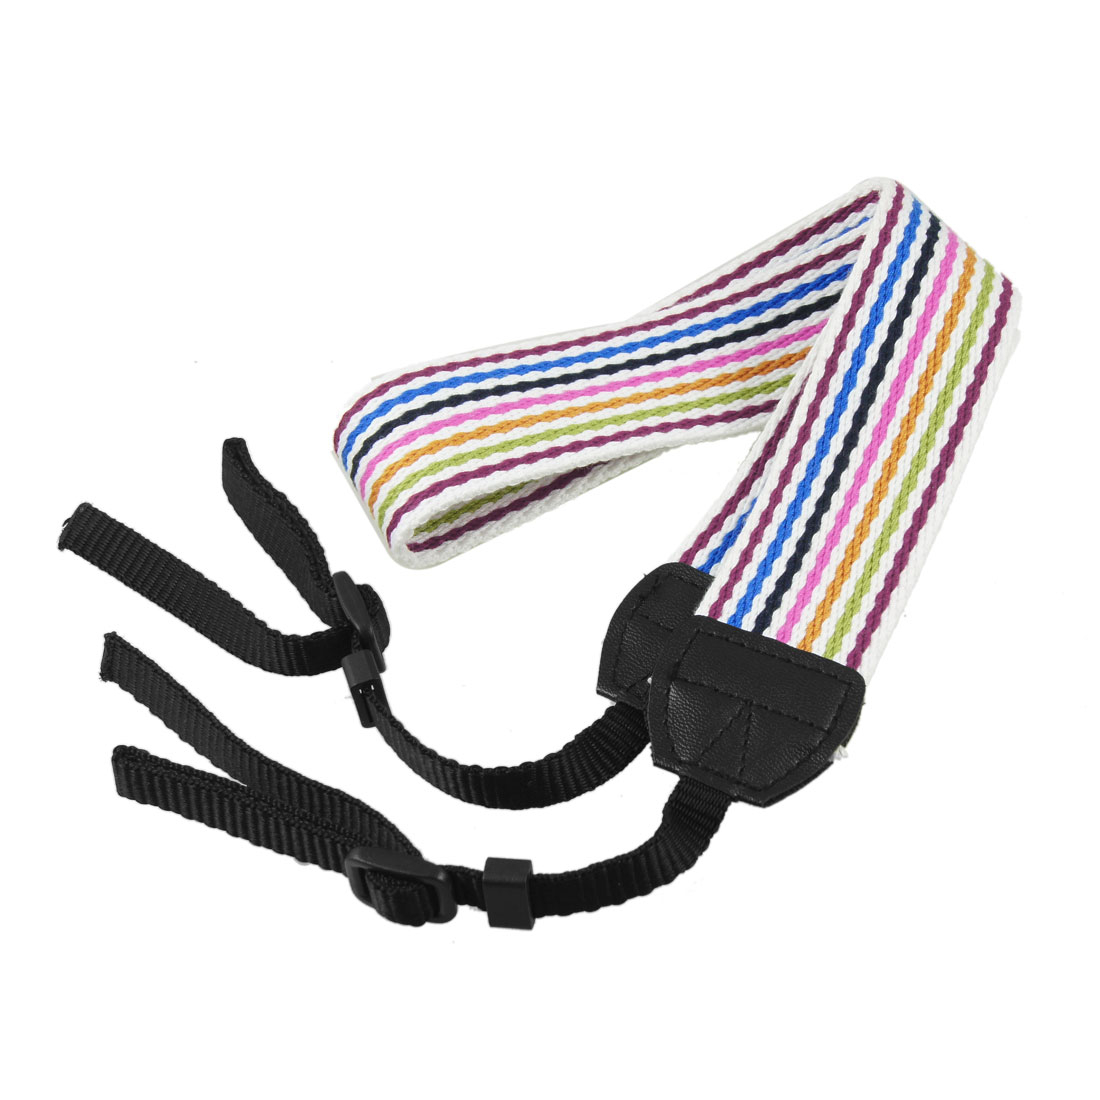 Digital Camera White Striped Shoulder Neoprene Antislip Strap